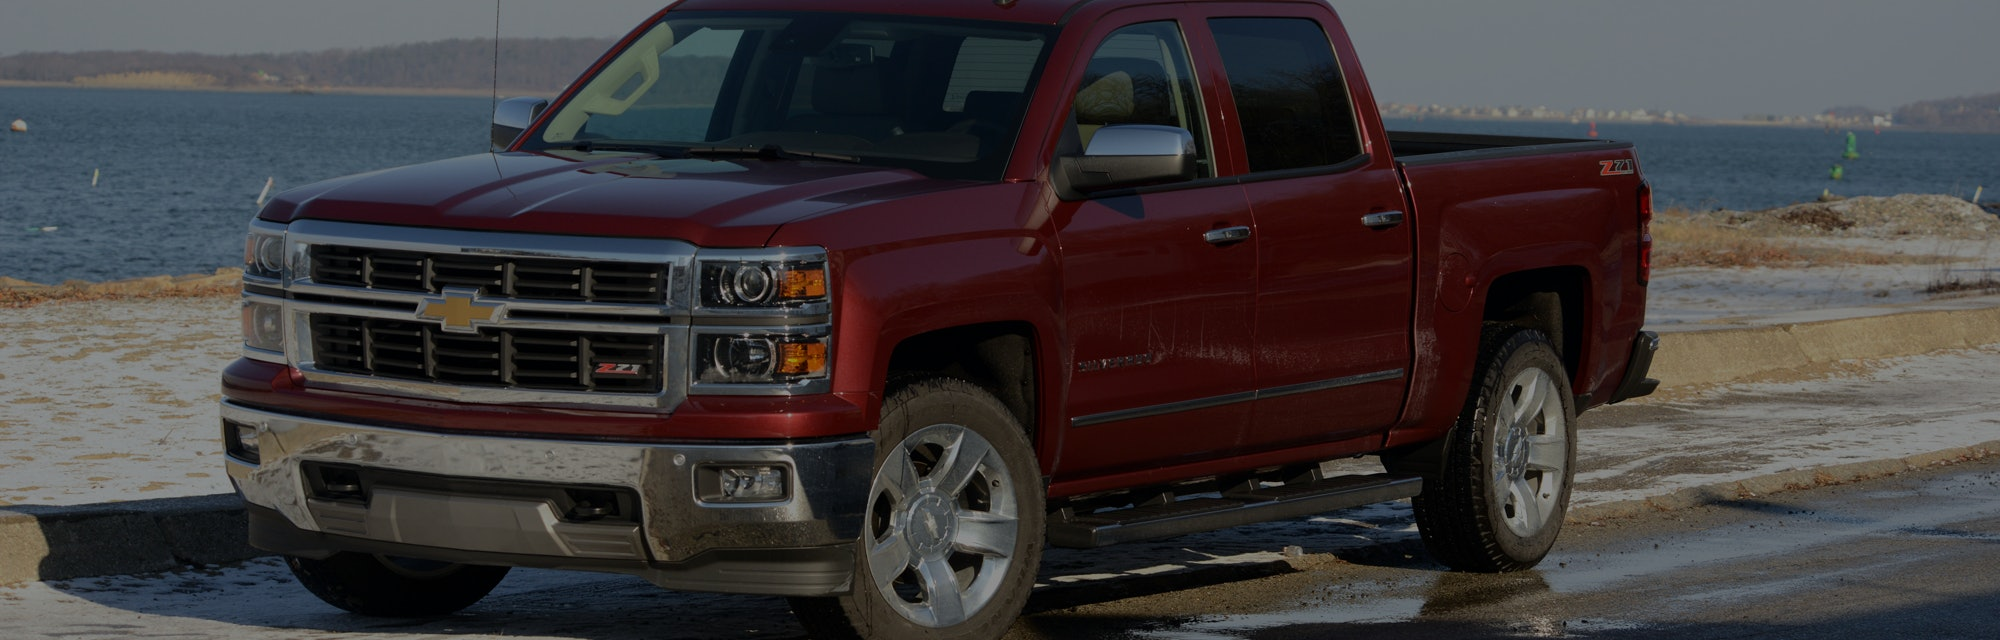 (Boston, MA 011014) 2014 Chevy Silverado.  (Staff photo by Jim Mahoney) (Photo by Jim Mahoney/MediaNews Group/Boston Herald via Getty Images)